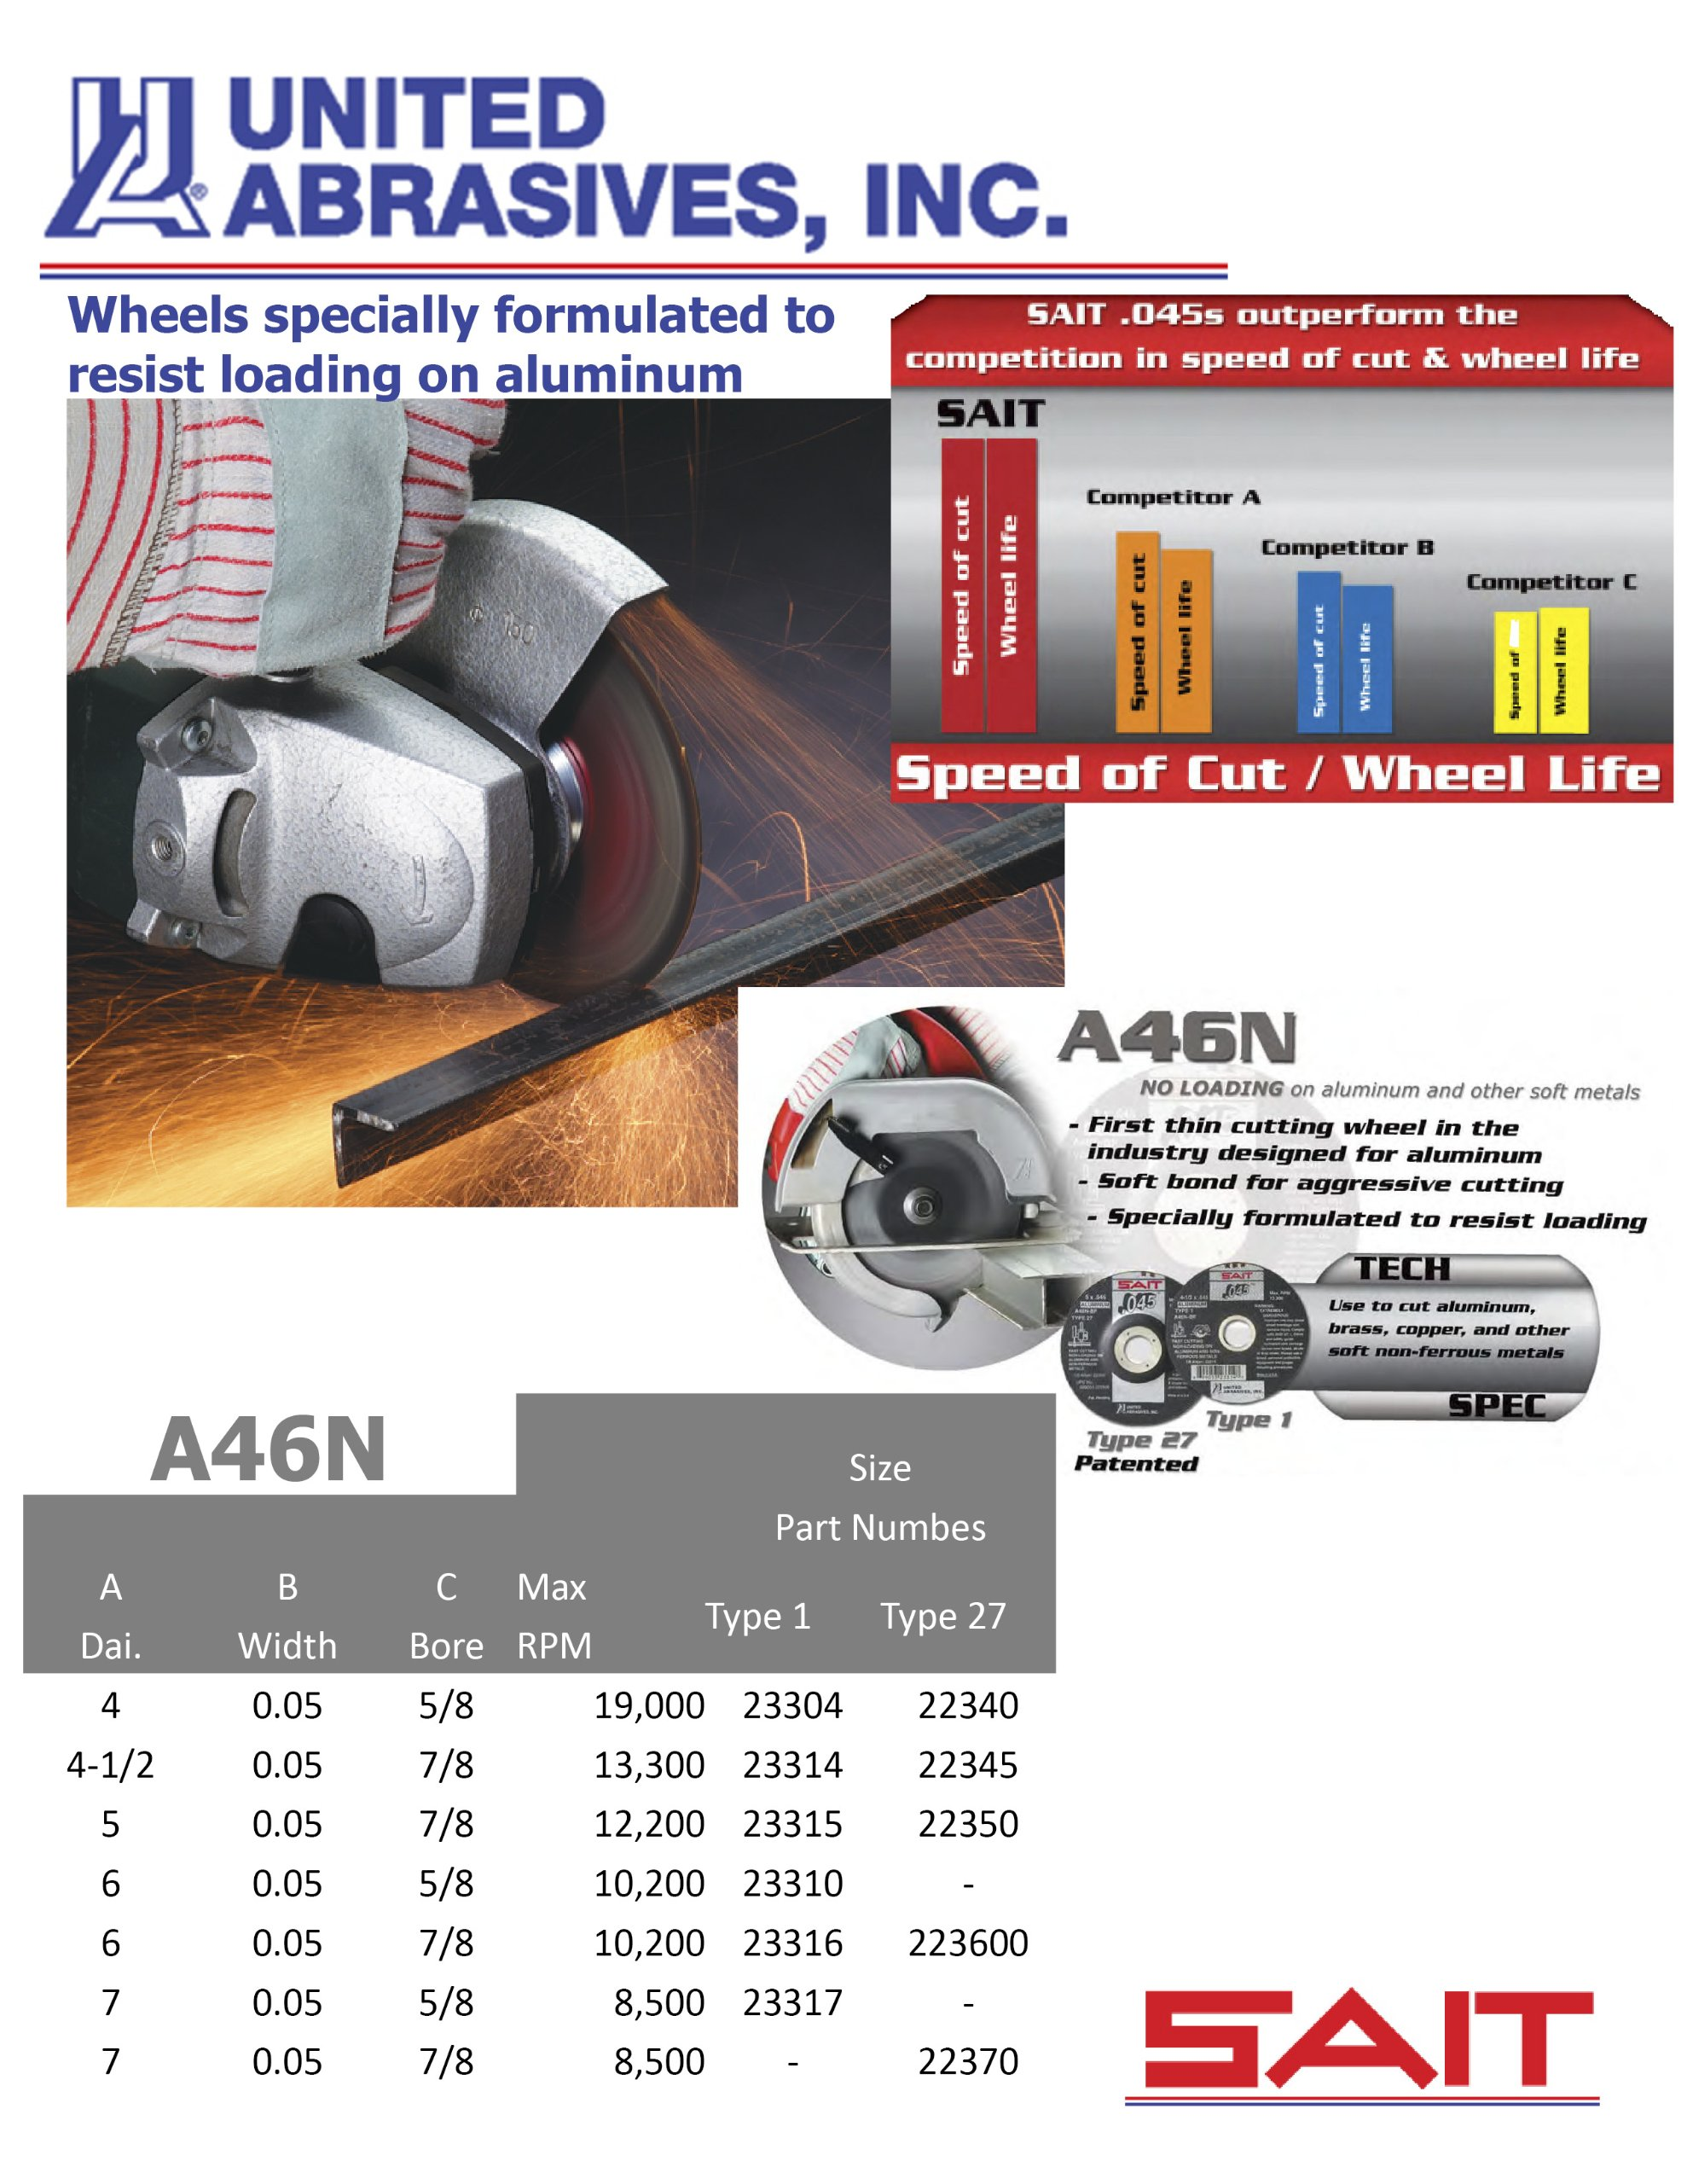 United Abrasives-SAIT 22345 Cutting Wheel Type 27 A46N, 4-1/2-Inch by .045-Inch by 7/8-Inch, 50-Pack